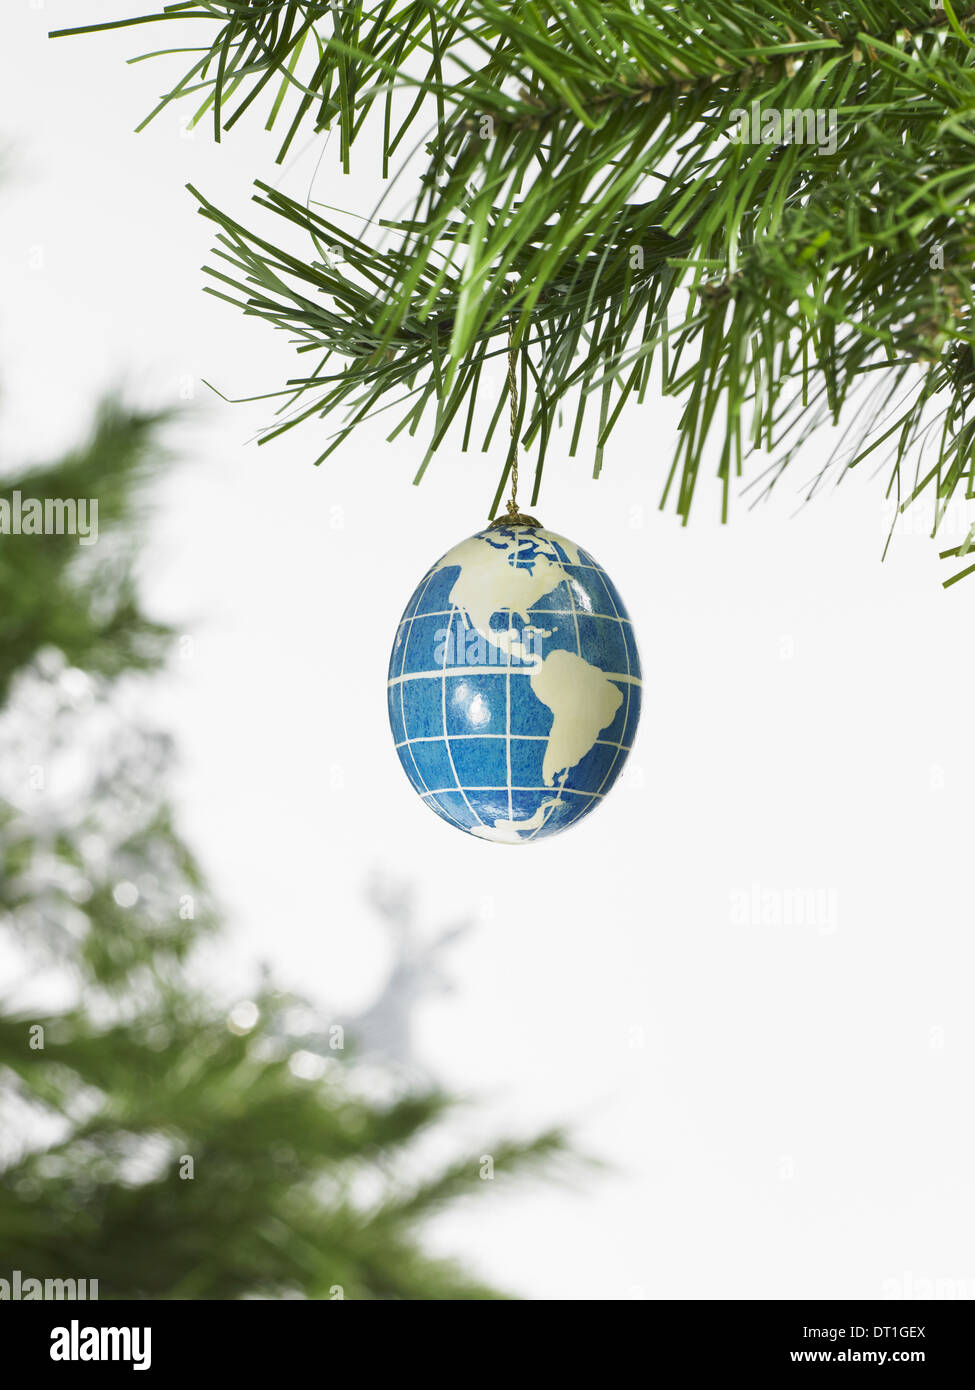 decorations A pine tree branch and a blue and white bauble A globe with continents outlined on a blue background - Stock Image